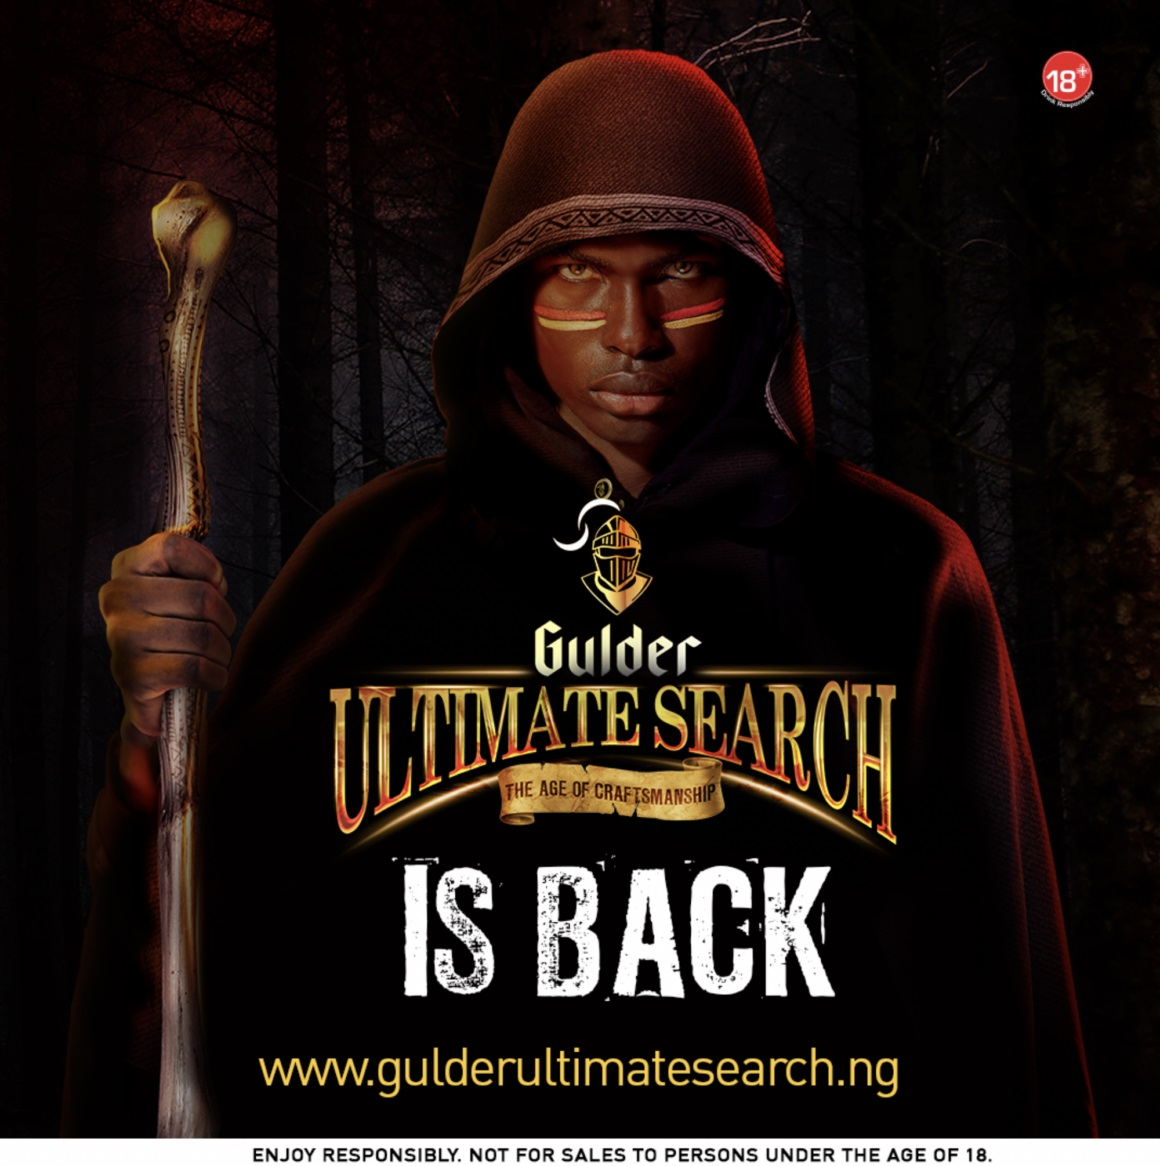 Toke Makinwa unveiled as 2021 Gulder Ultimate Search anchor (Video)